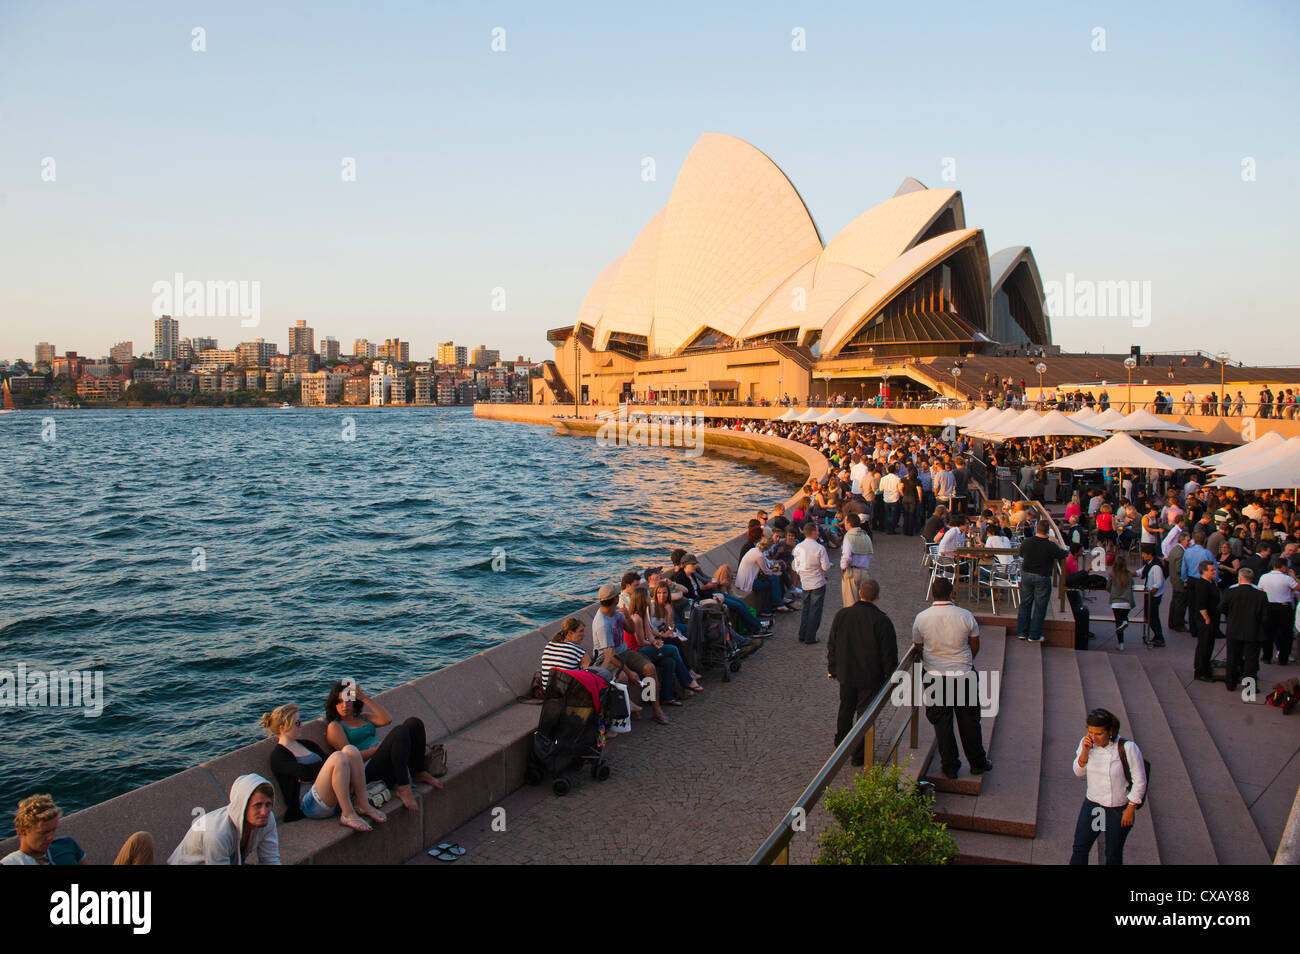 People enjoying the evening in Sydney, drinking at the Opera Bar, Sydney, New South Wales, Australia - Stock Image